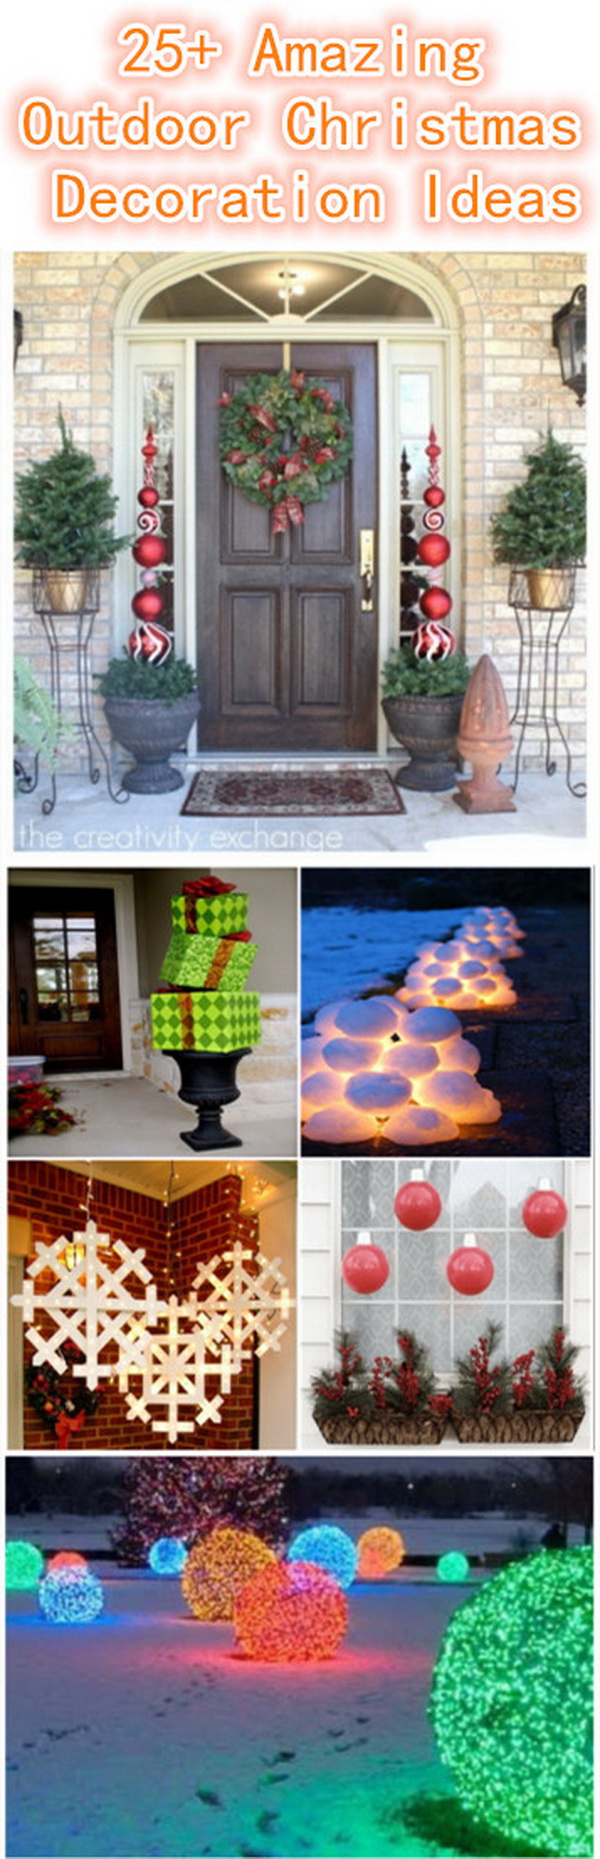 25+ Amazing DIY Outdoor Christmas Decoration Ideas. Christmas holiday is one of the most exciting times of the year. Maybe you have got your indoor ready for the holiday, but do not forget about your outdoors. If you've been looking for new ways to dress up your lawn, garden, front porch... this holiday season, this is definitely the collection for you.